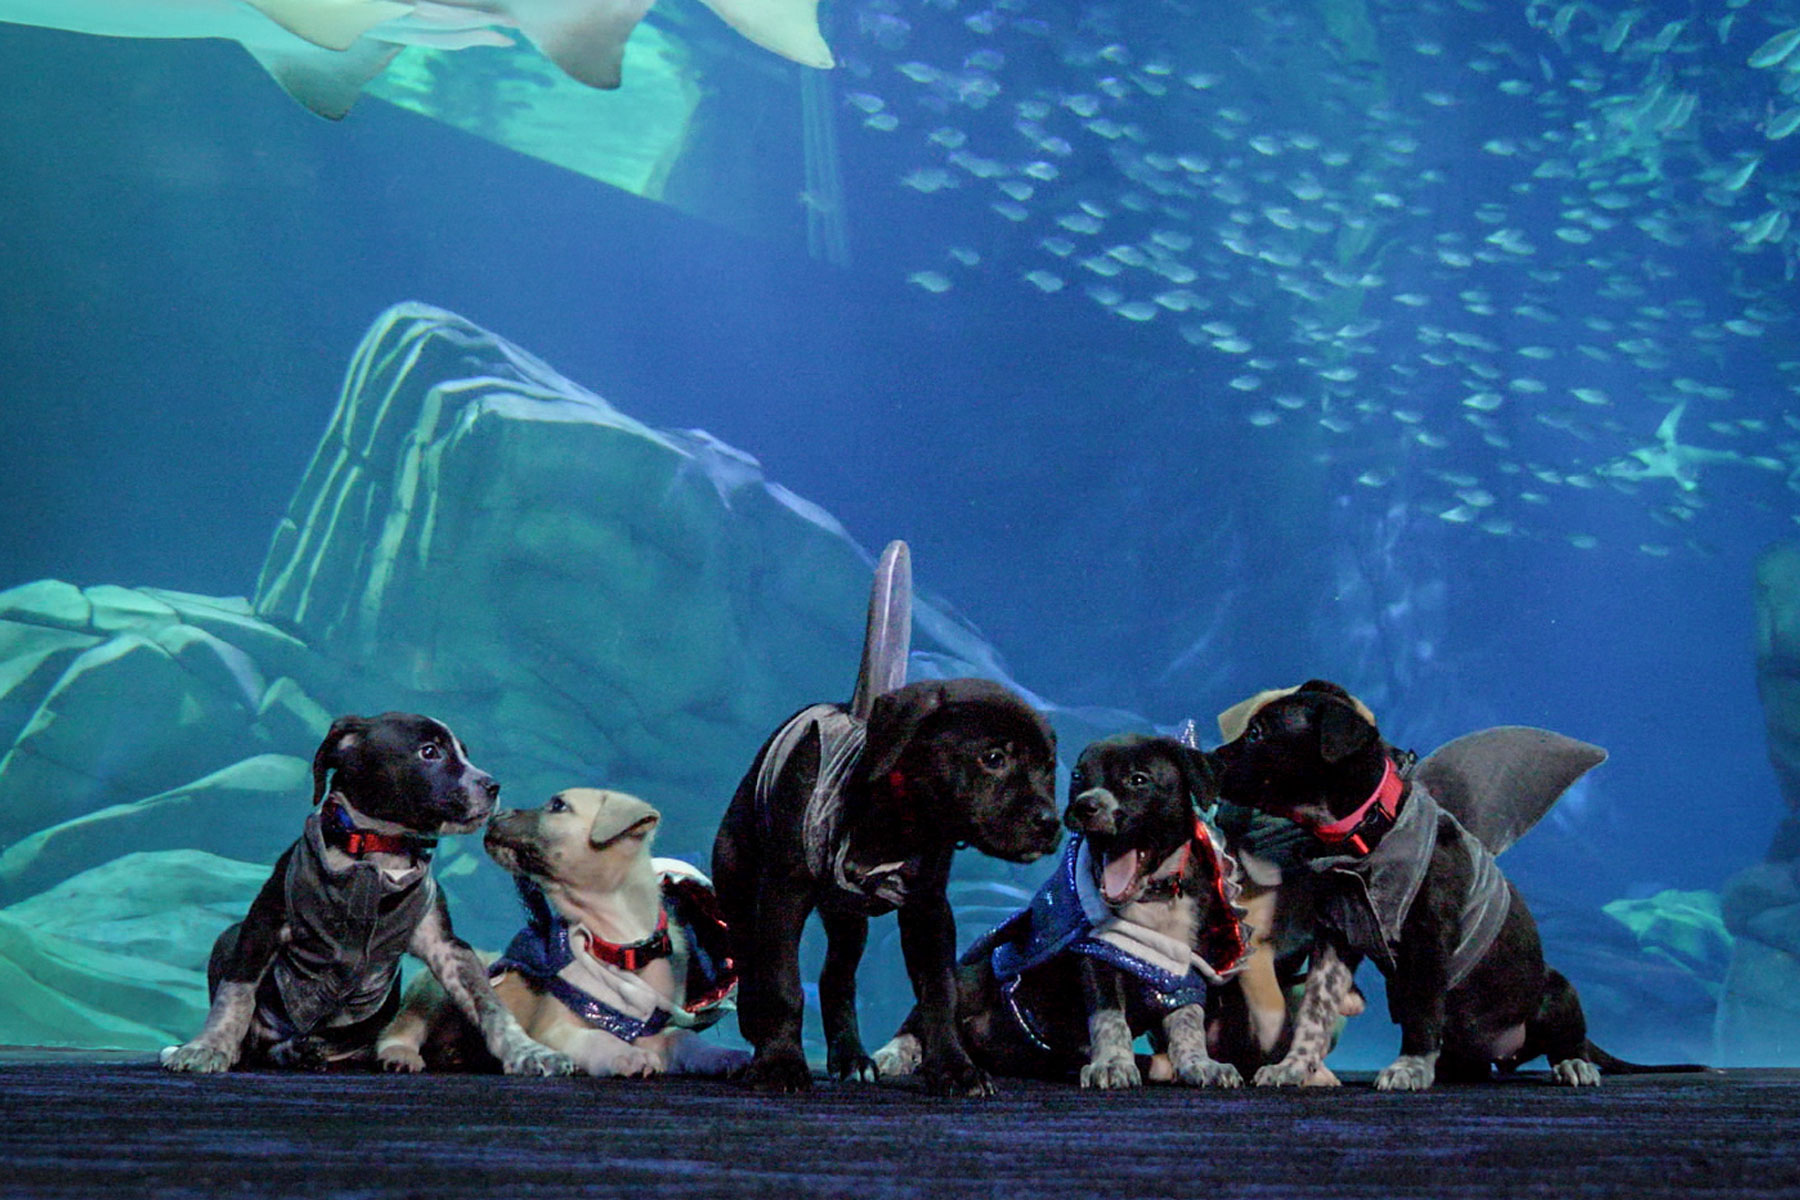 puppies wearing shark costumes